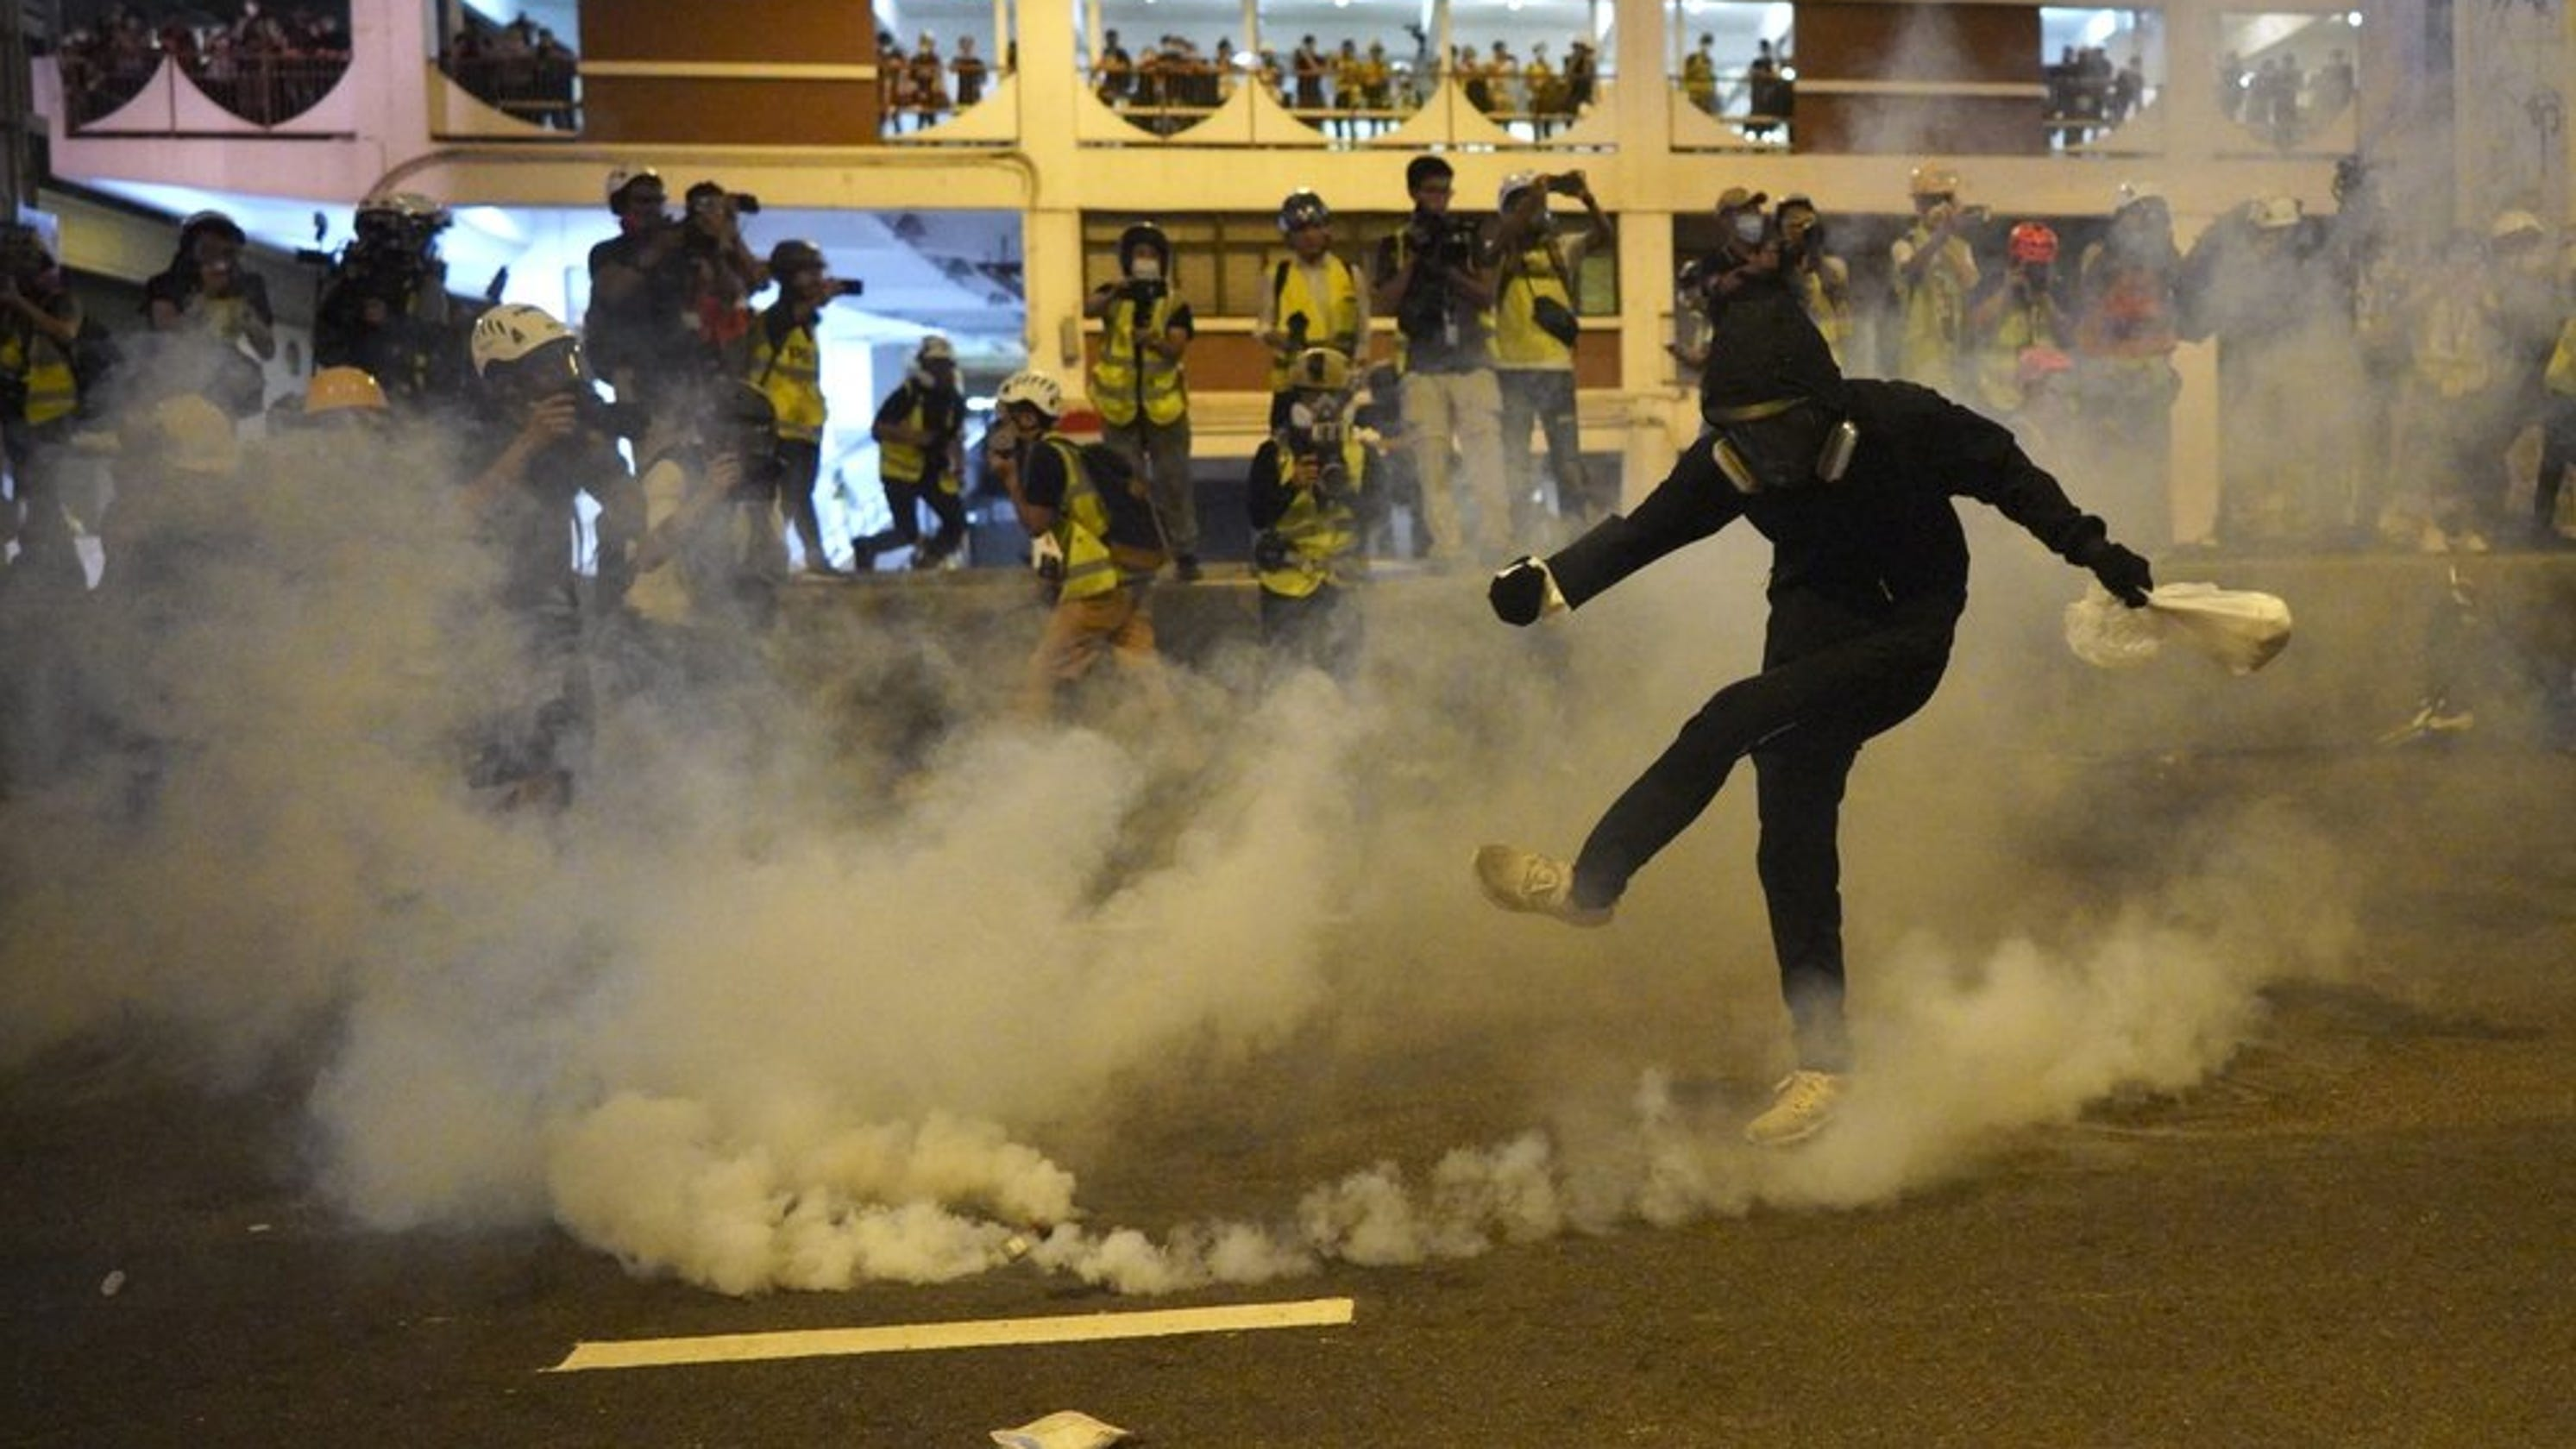 05f271e3d8a Hong Kong protests turn violent: Why they're protesting, what happened